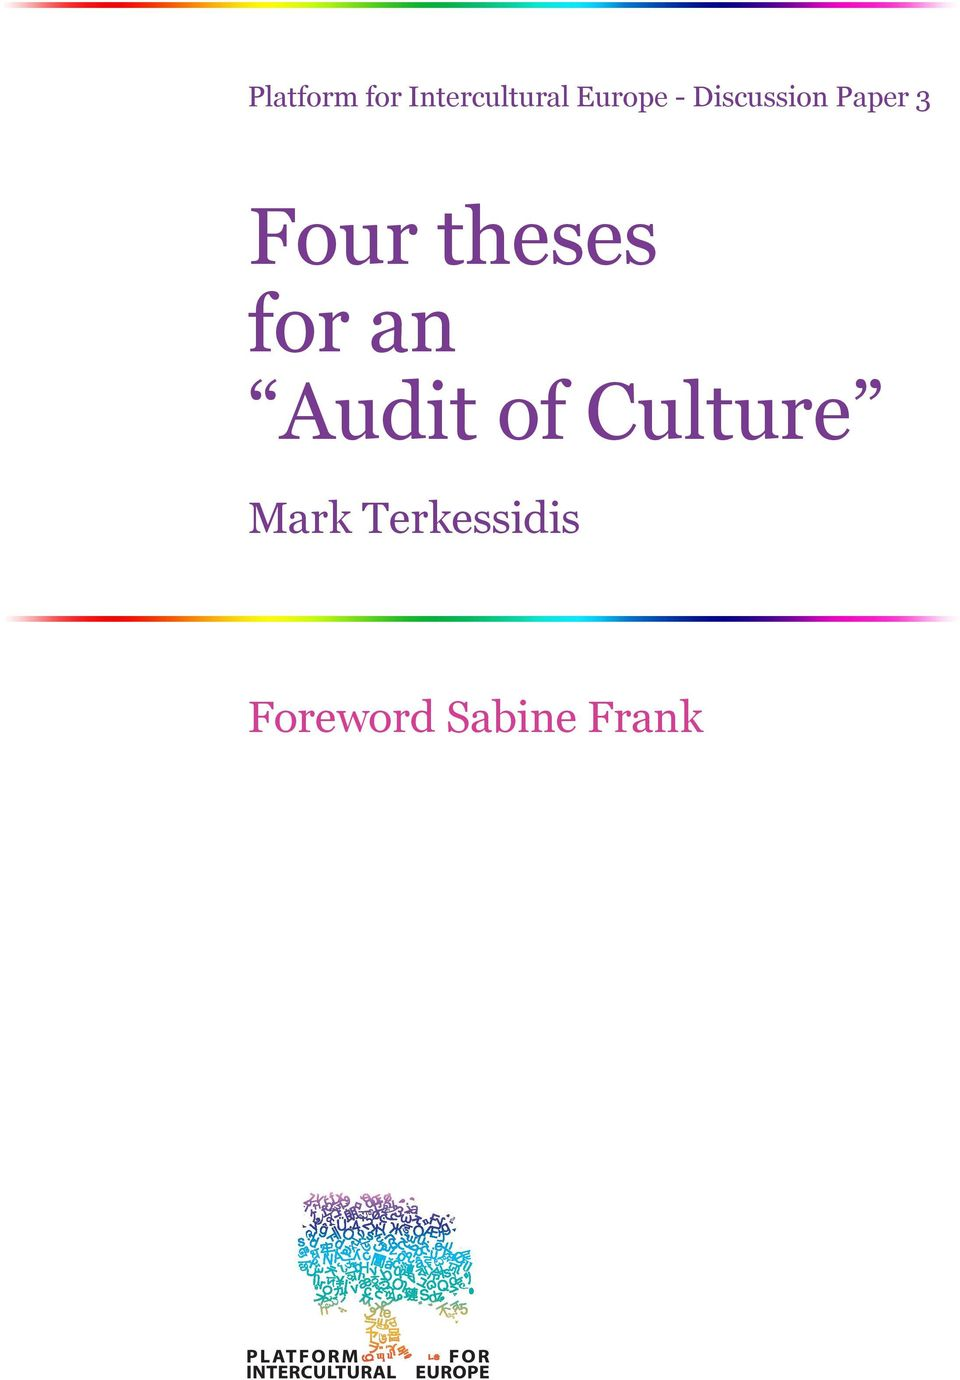 theses for an Audit of Culture